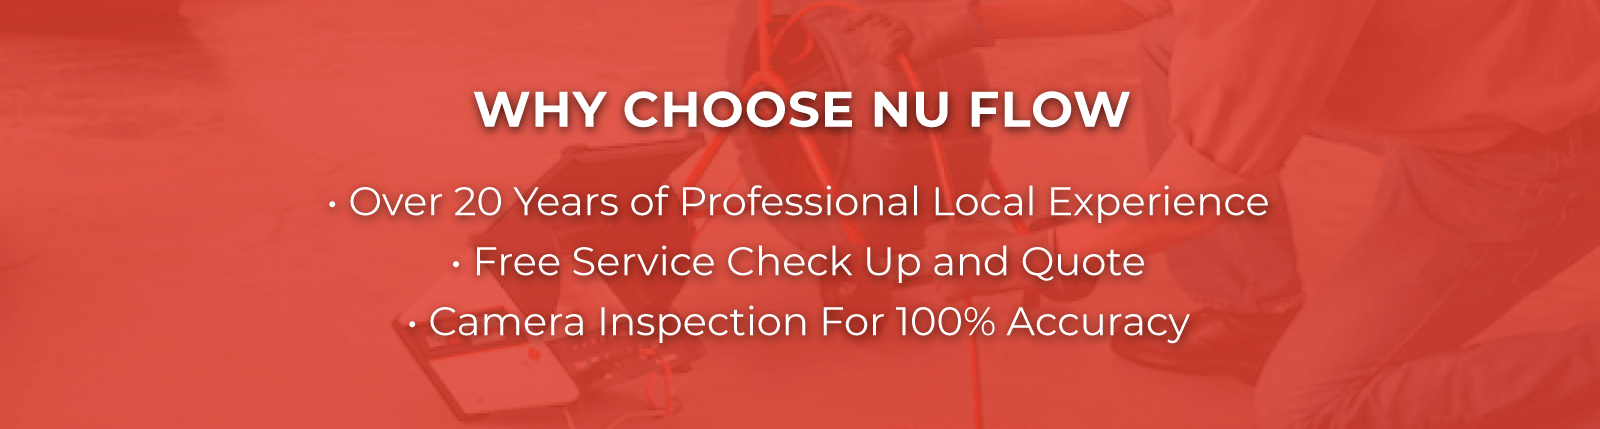 nu flow oklahoma sewer repair 1 Sewer Pipe Relining Oklahoma City